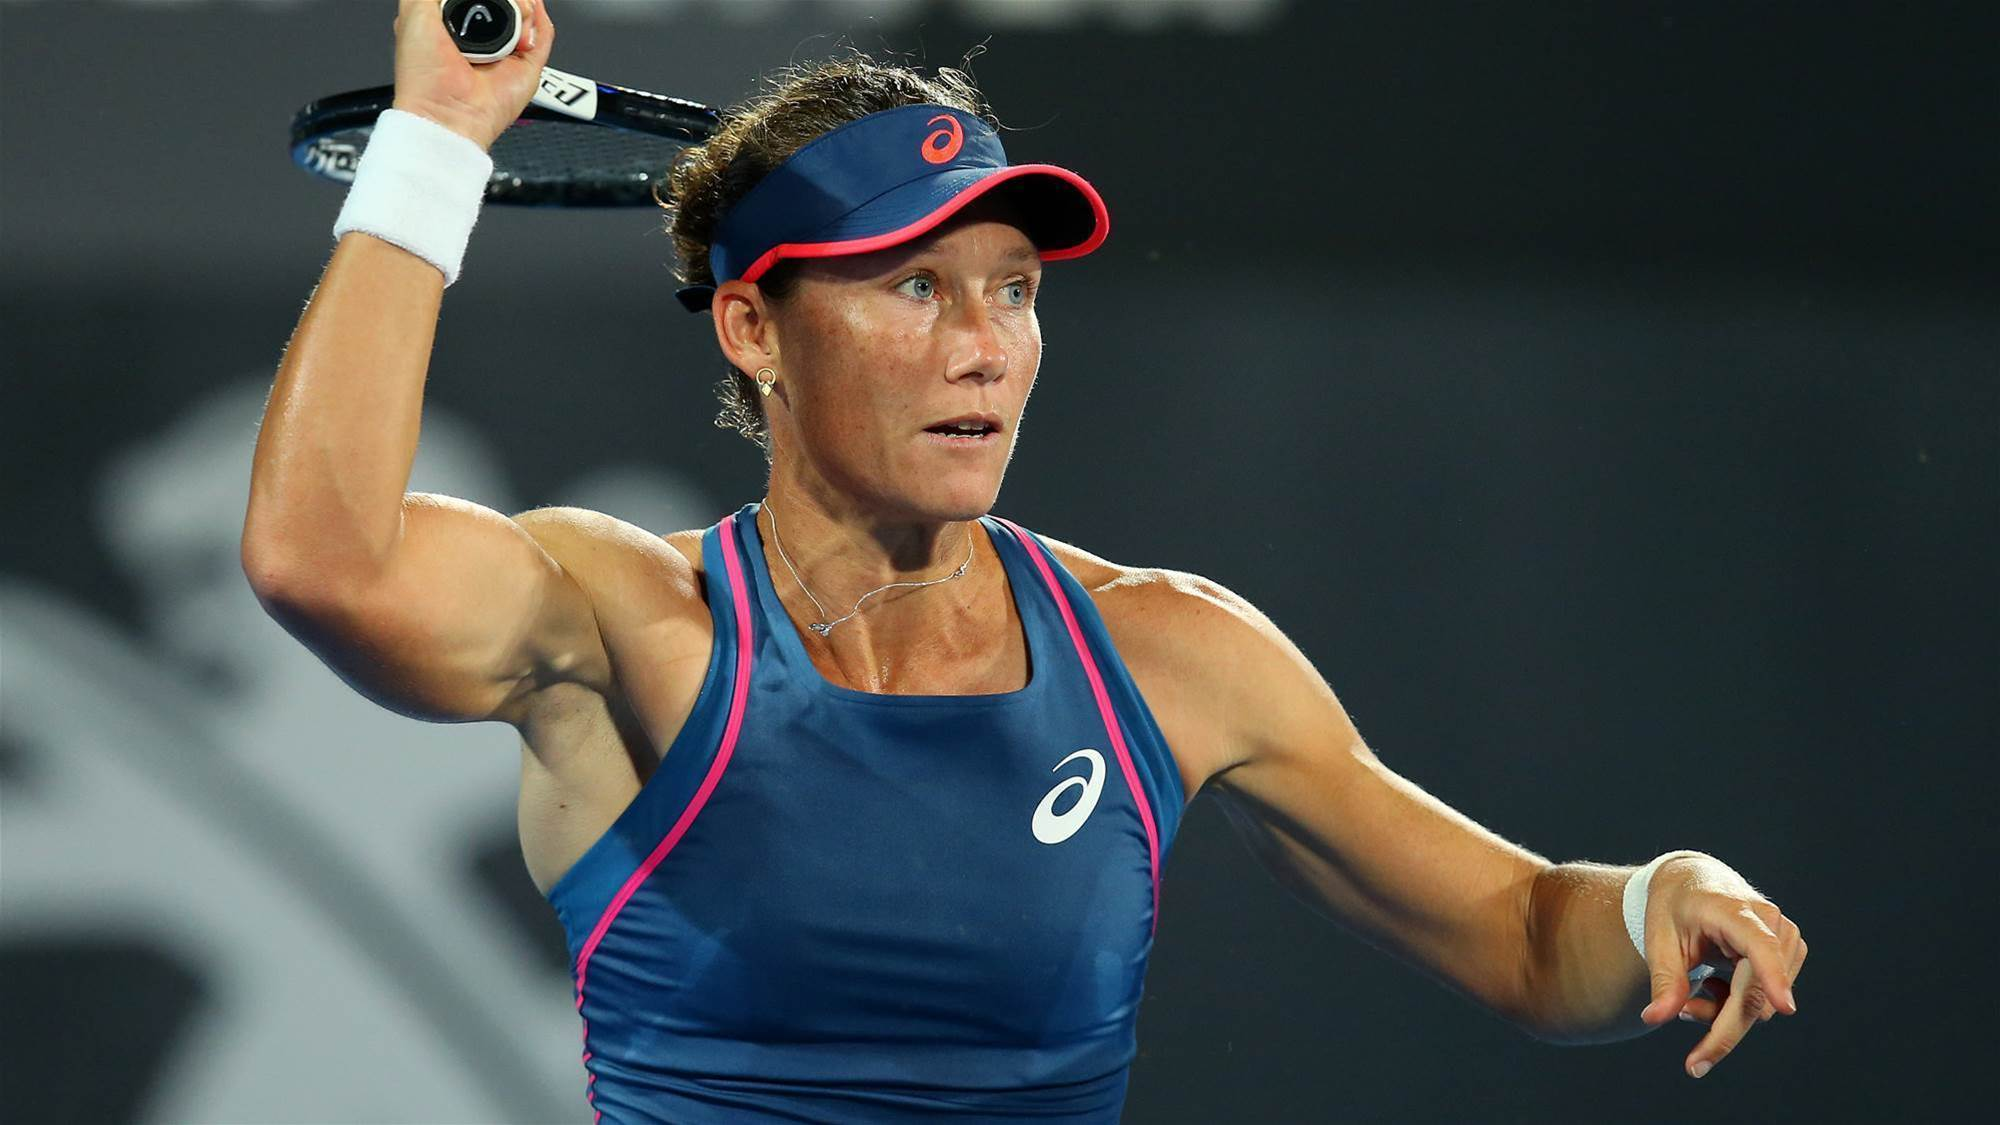 Stosur breaks seven match hoodoo